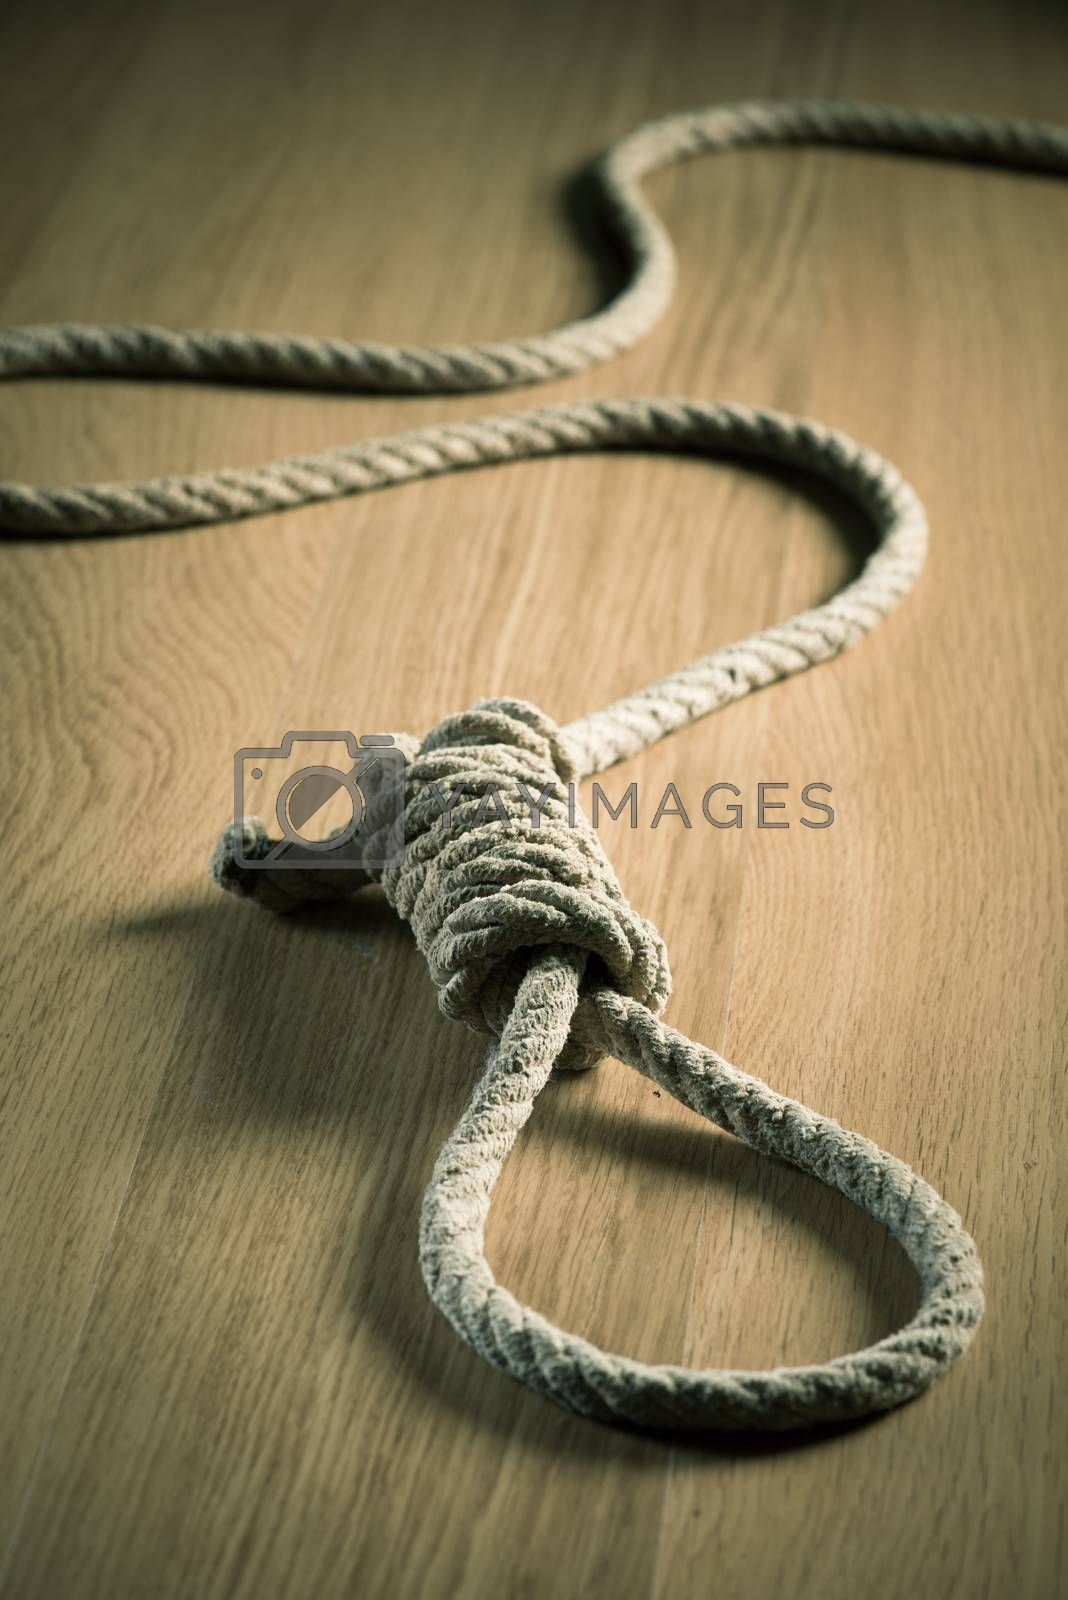 Noose lying on hardwood floor, suicide and punishment concept.